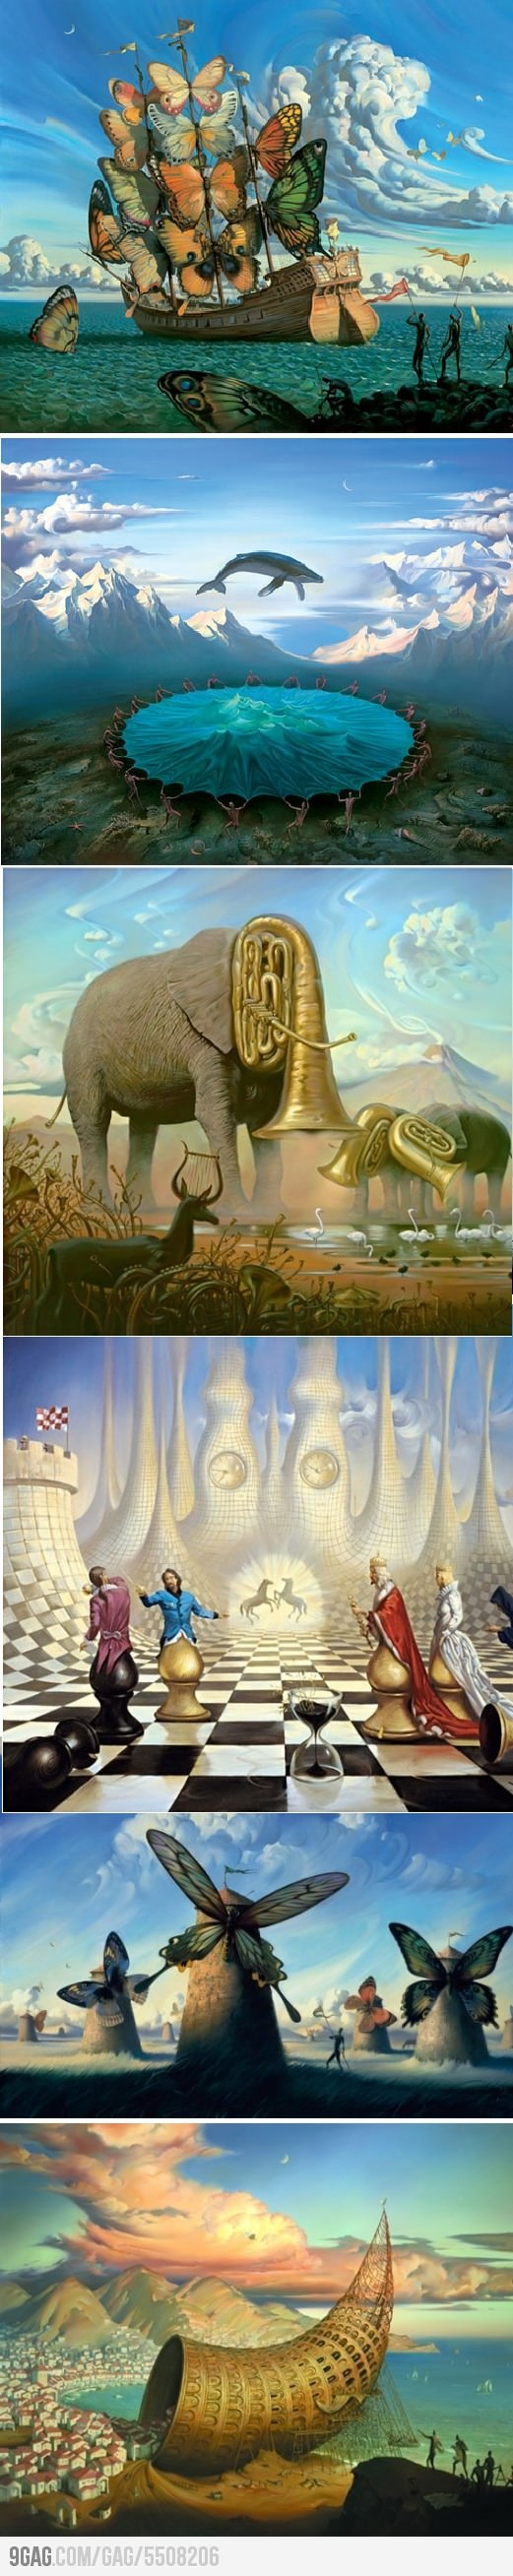 Surrealistic painter: Vladimir Kush  I will be laughing at those tuba elephants forever.